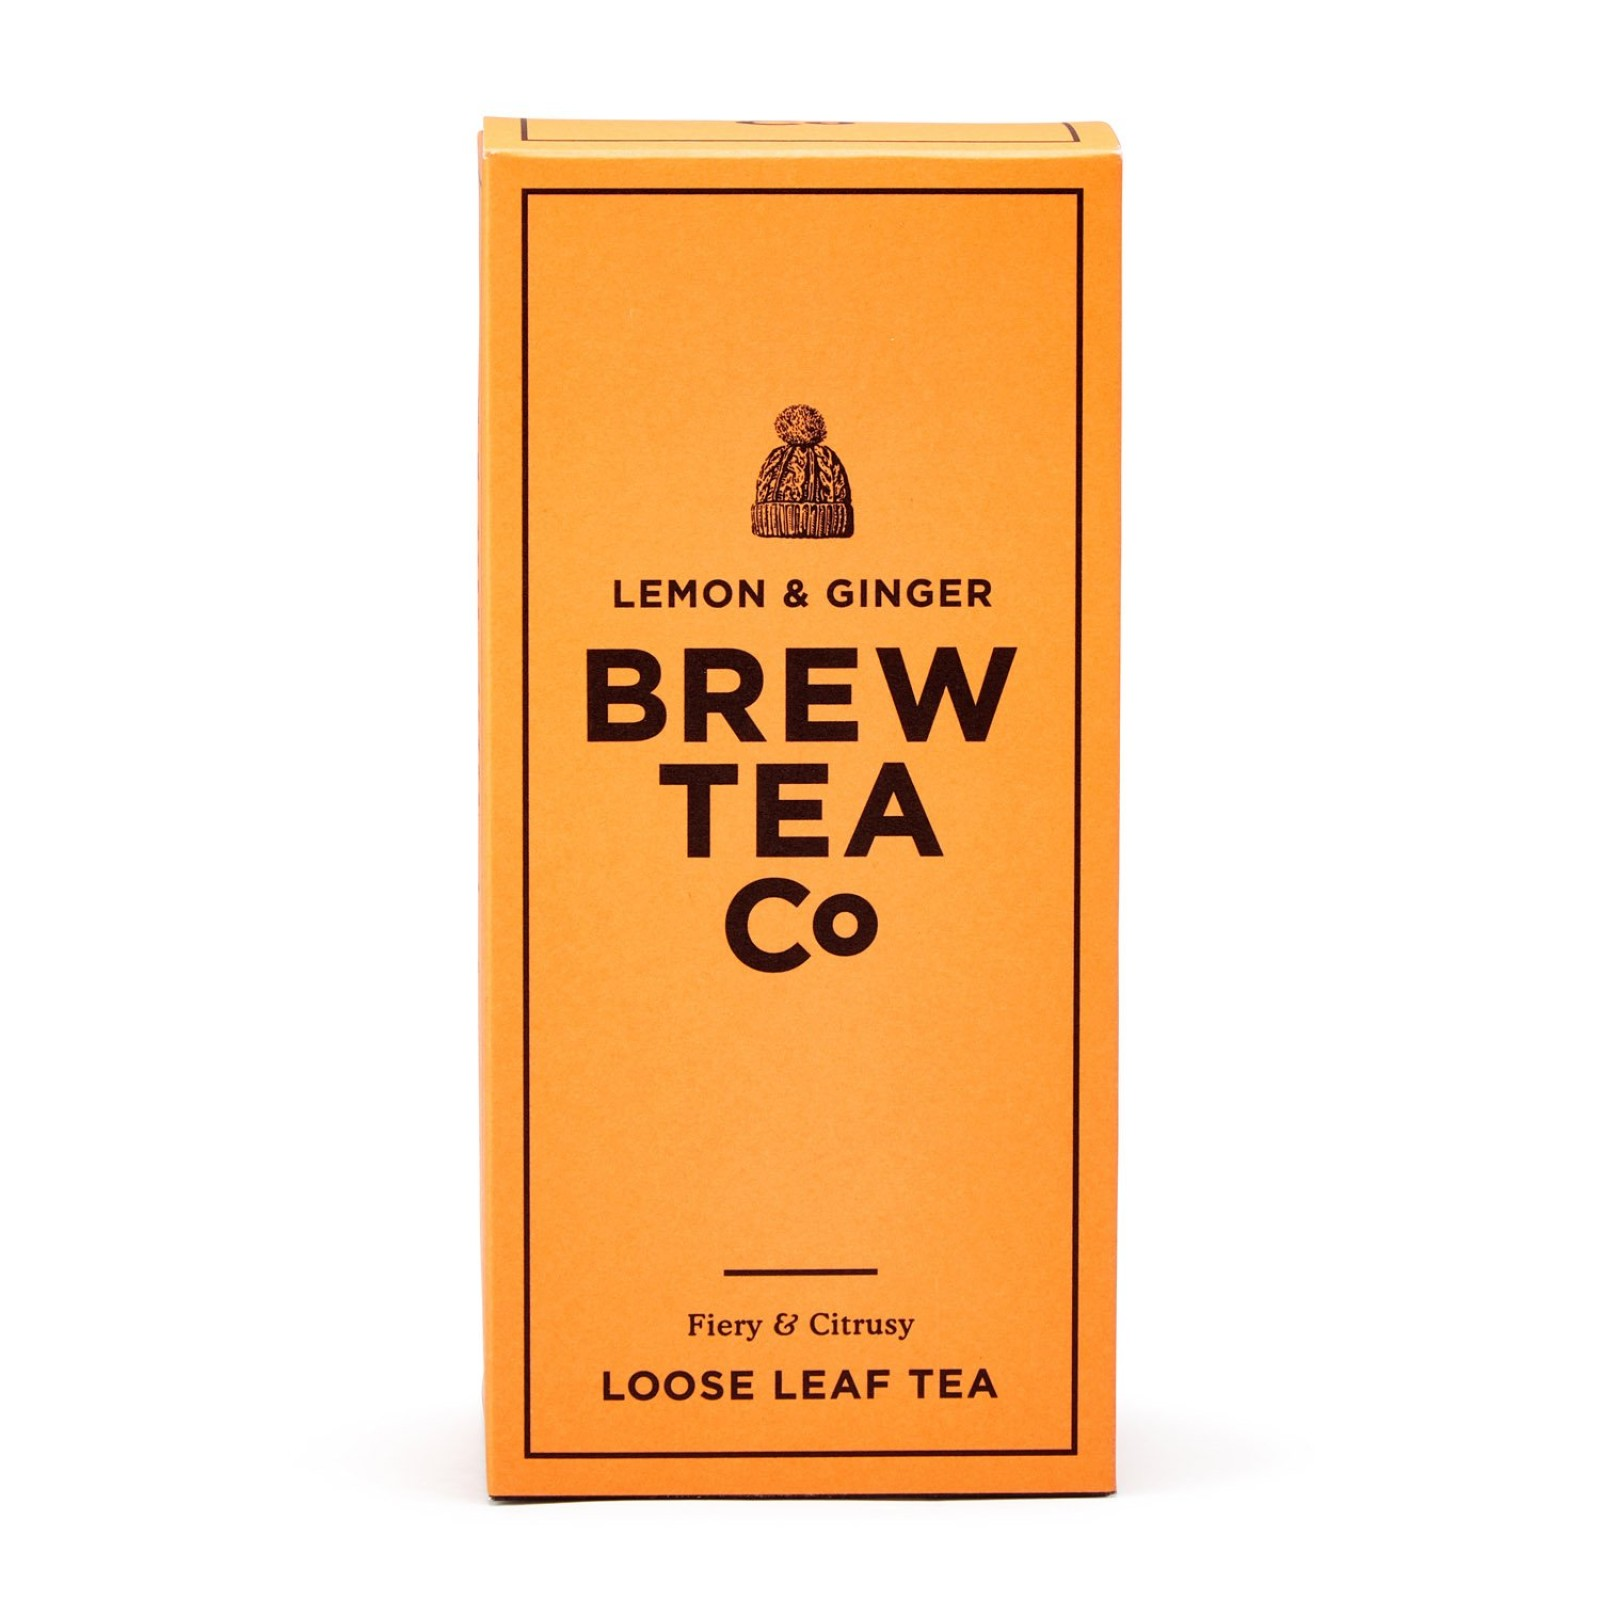 Lemon and Ginger - Loose Leaf Tea 113g Brew Tea Co